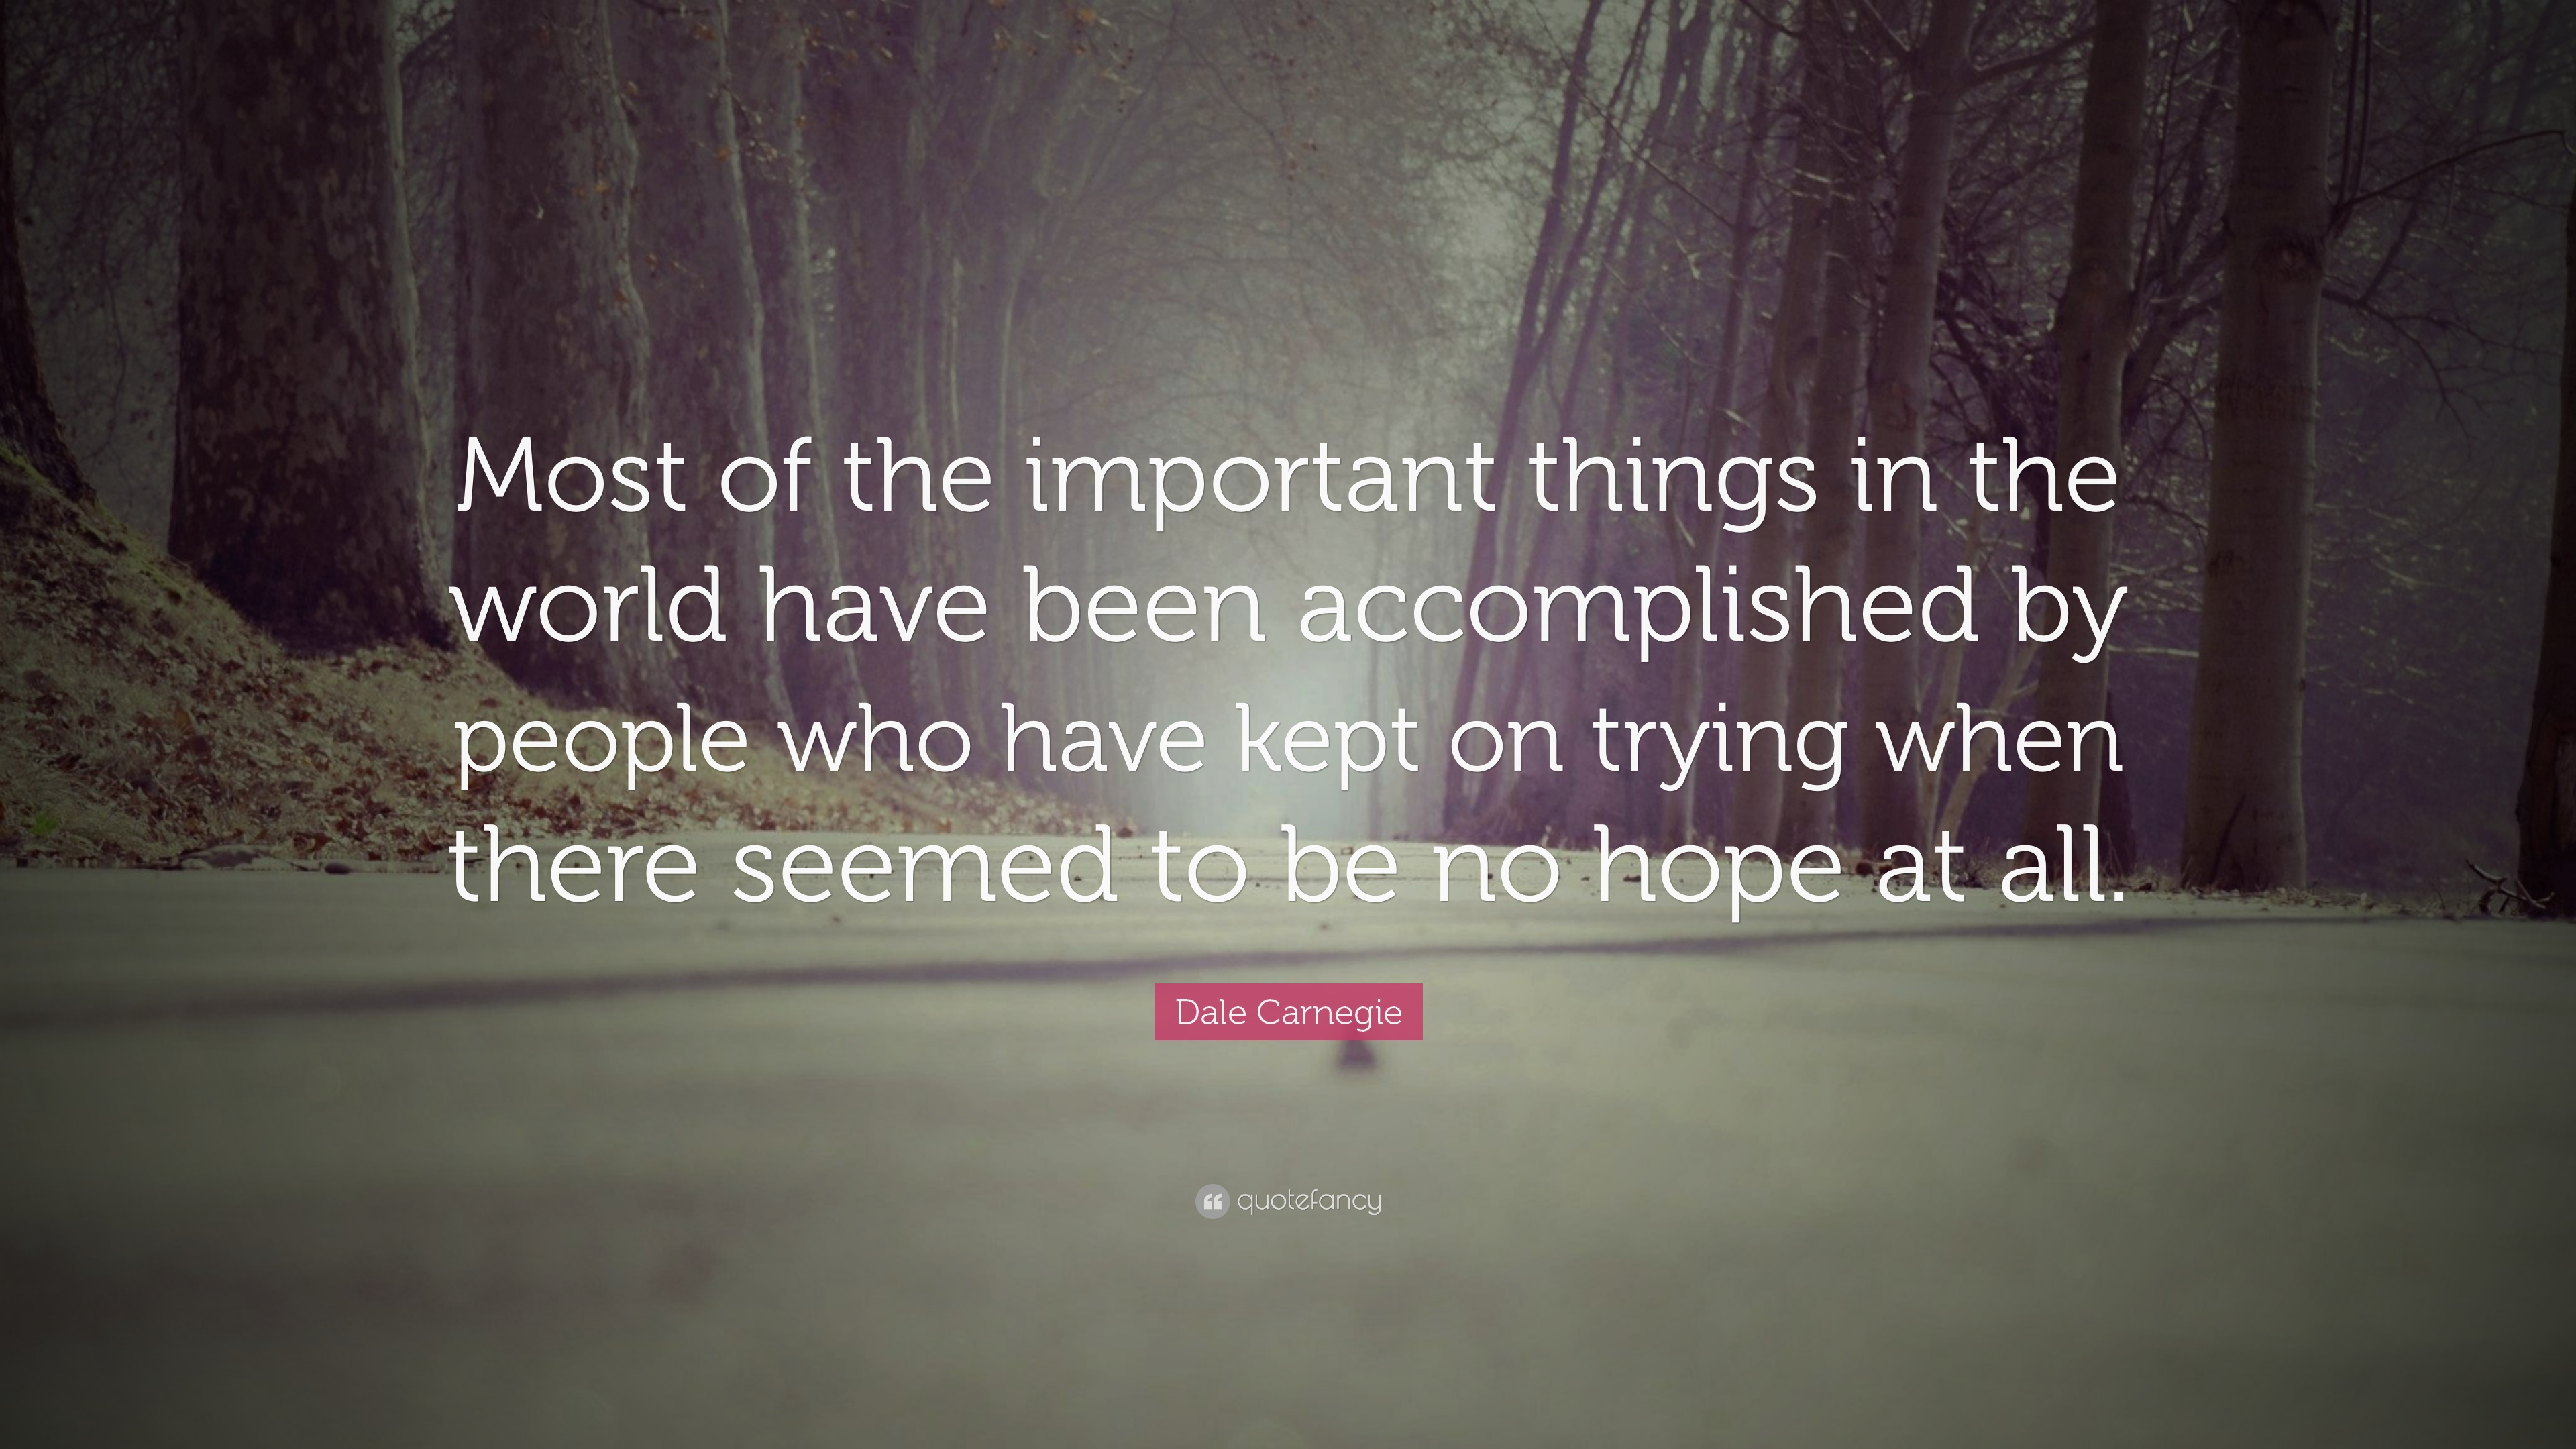 People Who Have the Most Important Things in the World of Accomplished Have Been Kept On Trying By